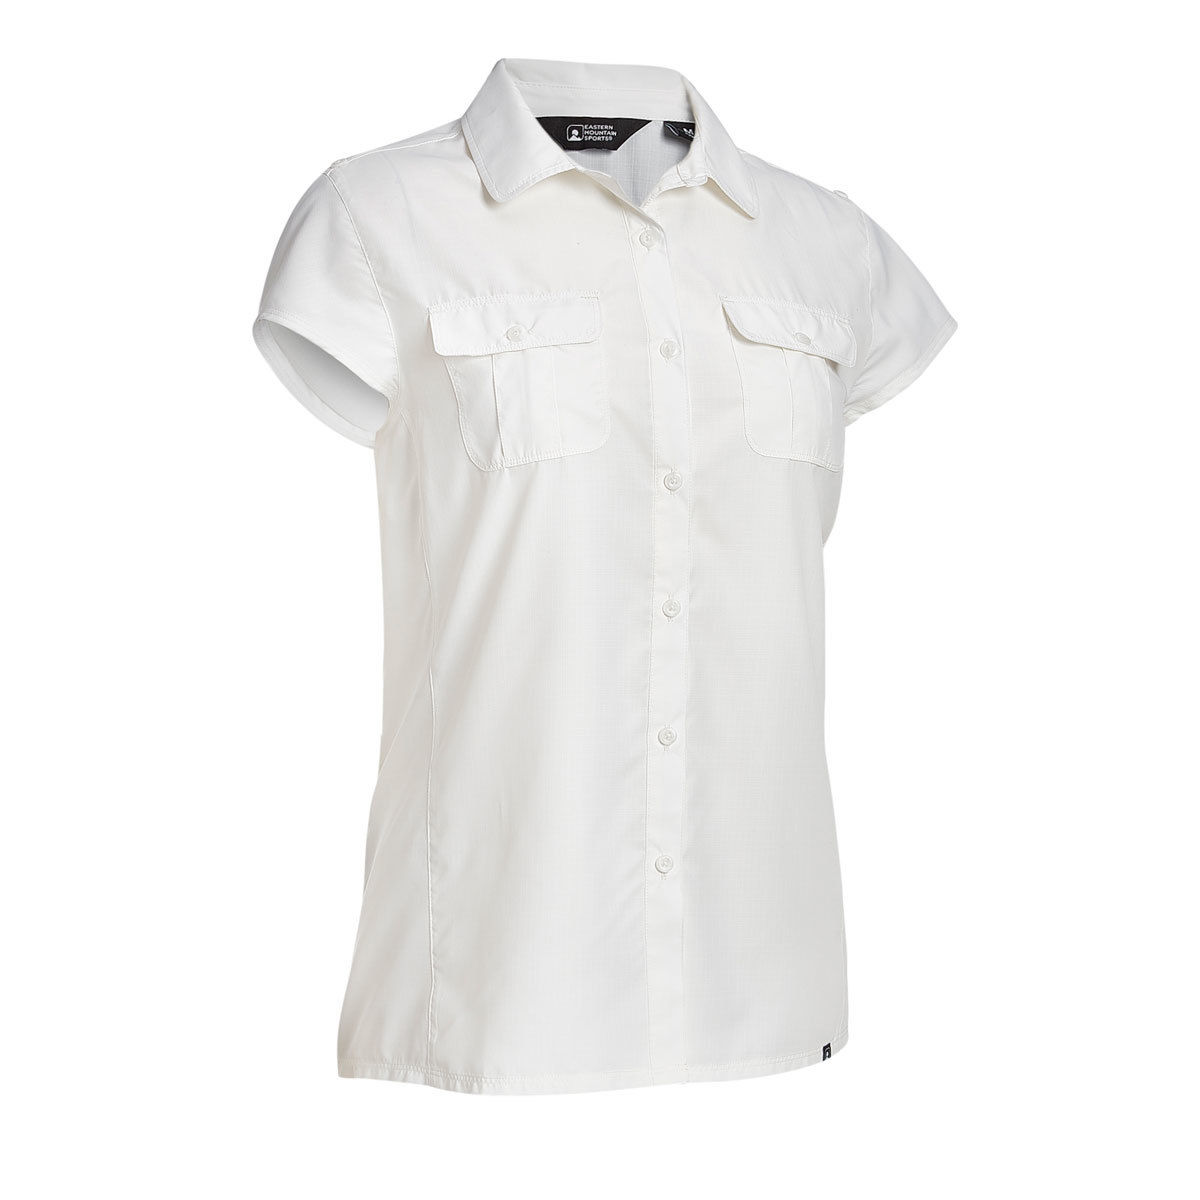 EMS Compass UPF Short-Sleeve